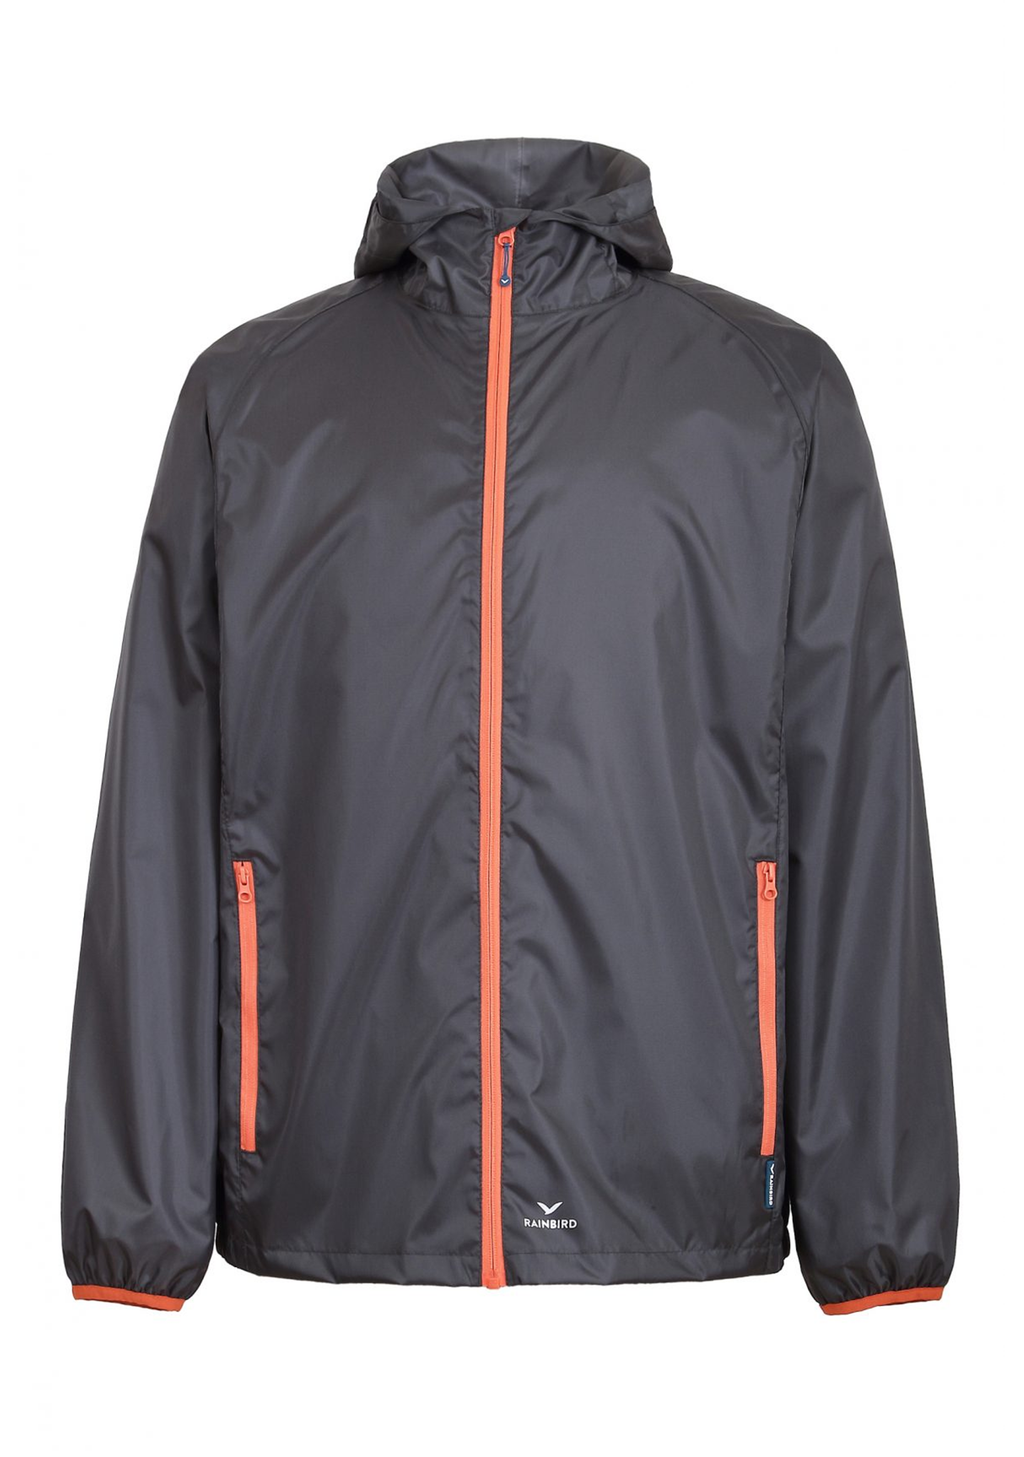 RAINBIRD UNISEX ADULTS GOSTOW RAIN JACKET <BR> 8531 GRANITE FLAME